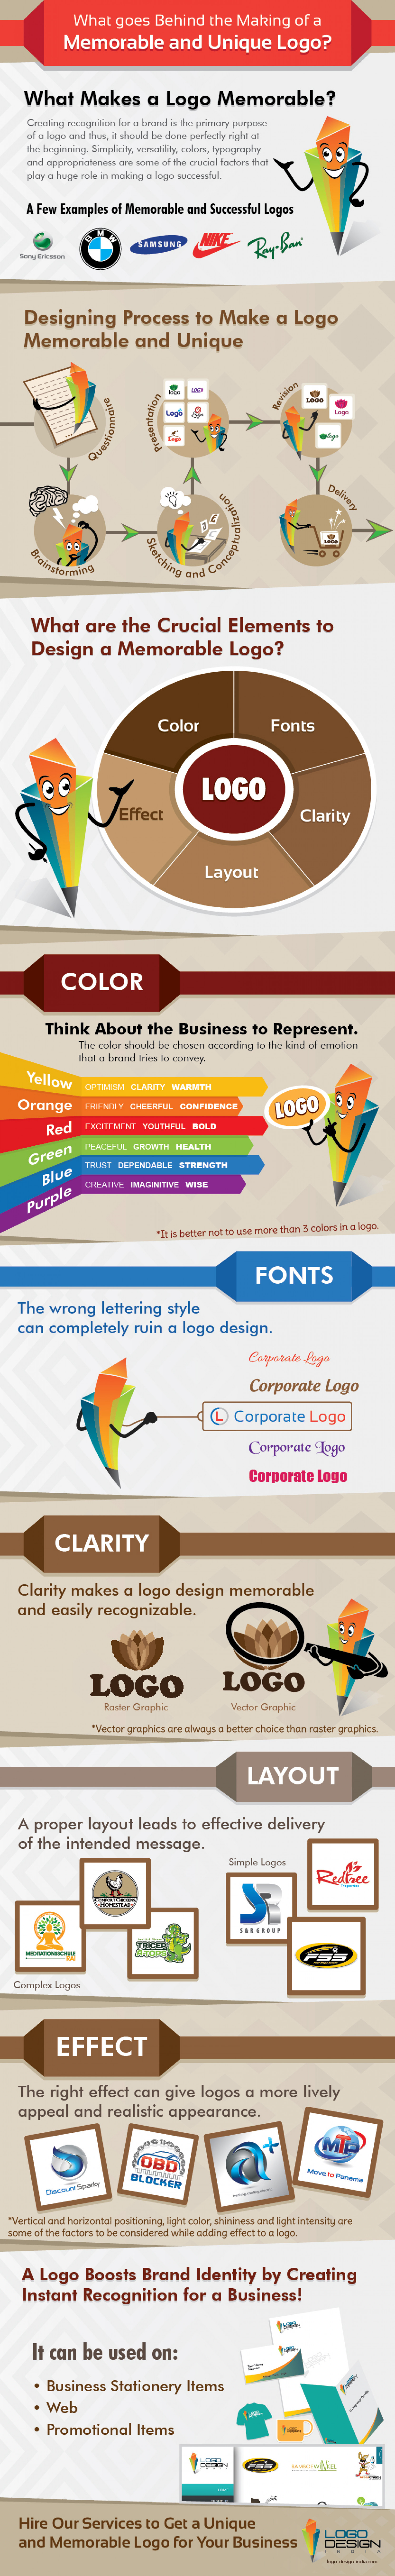 Designing a Memorable and Eye-Catchy Logo Infographic